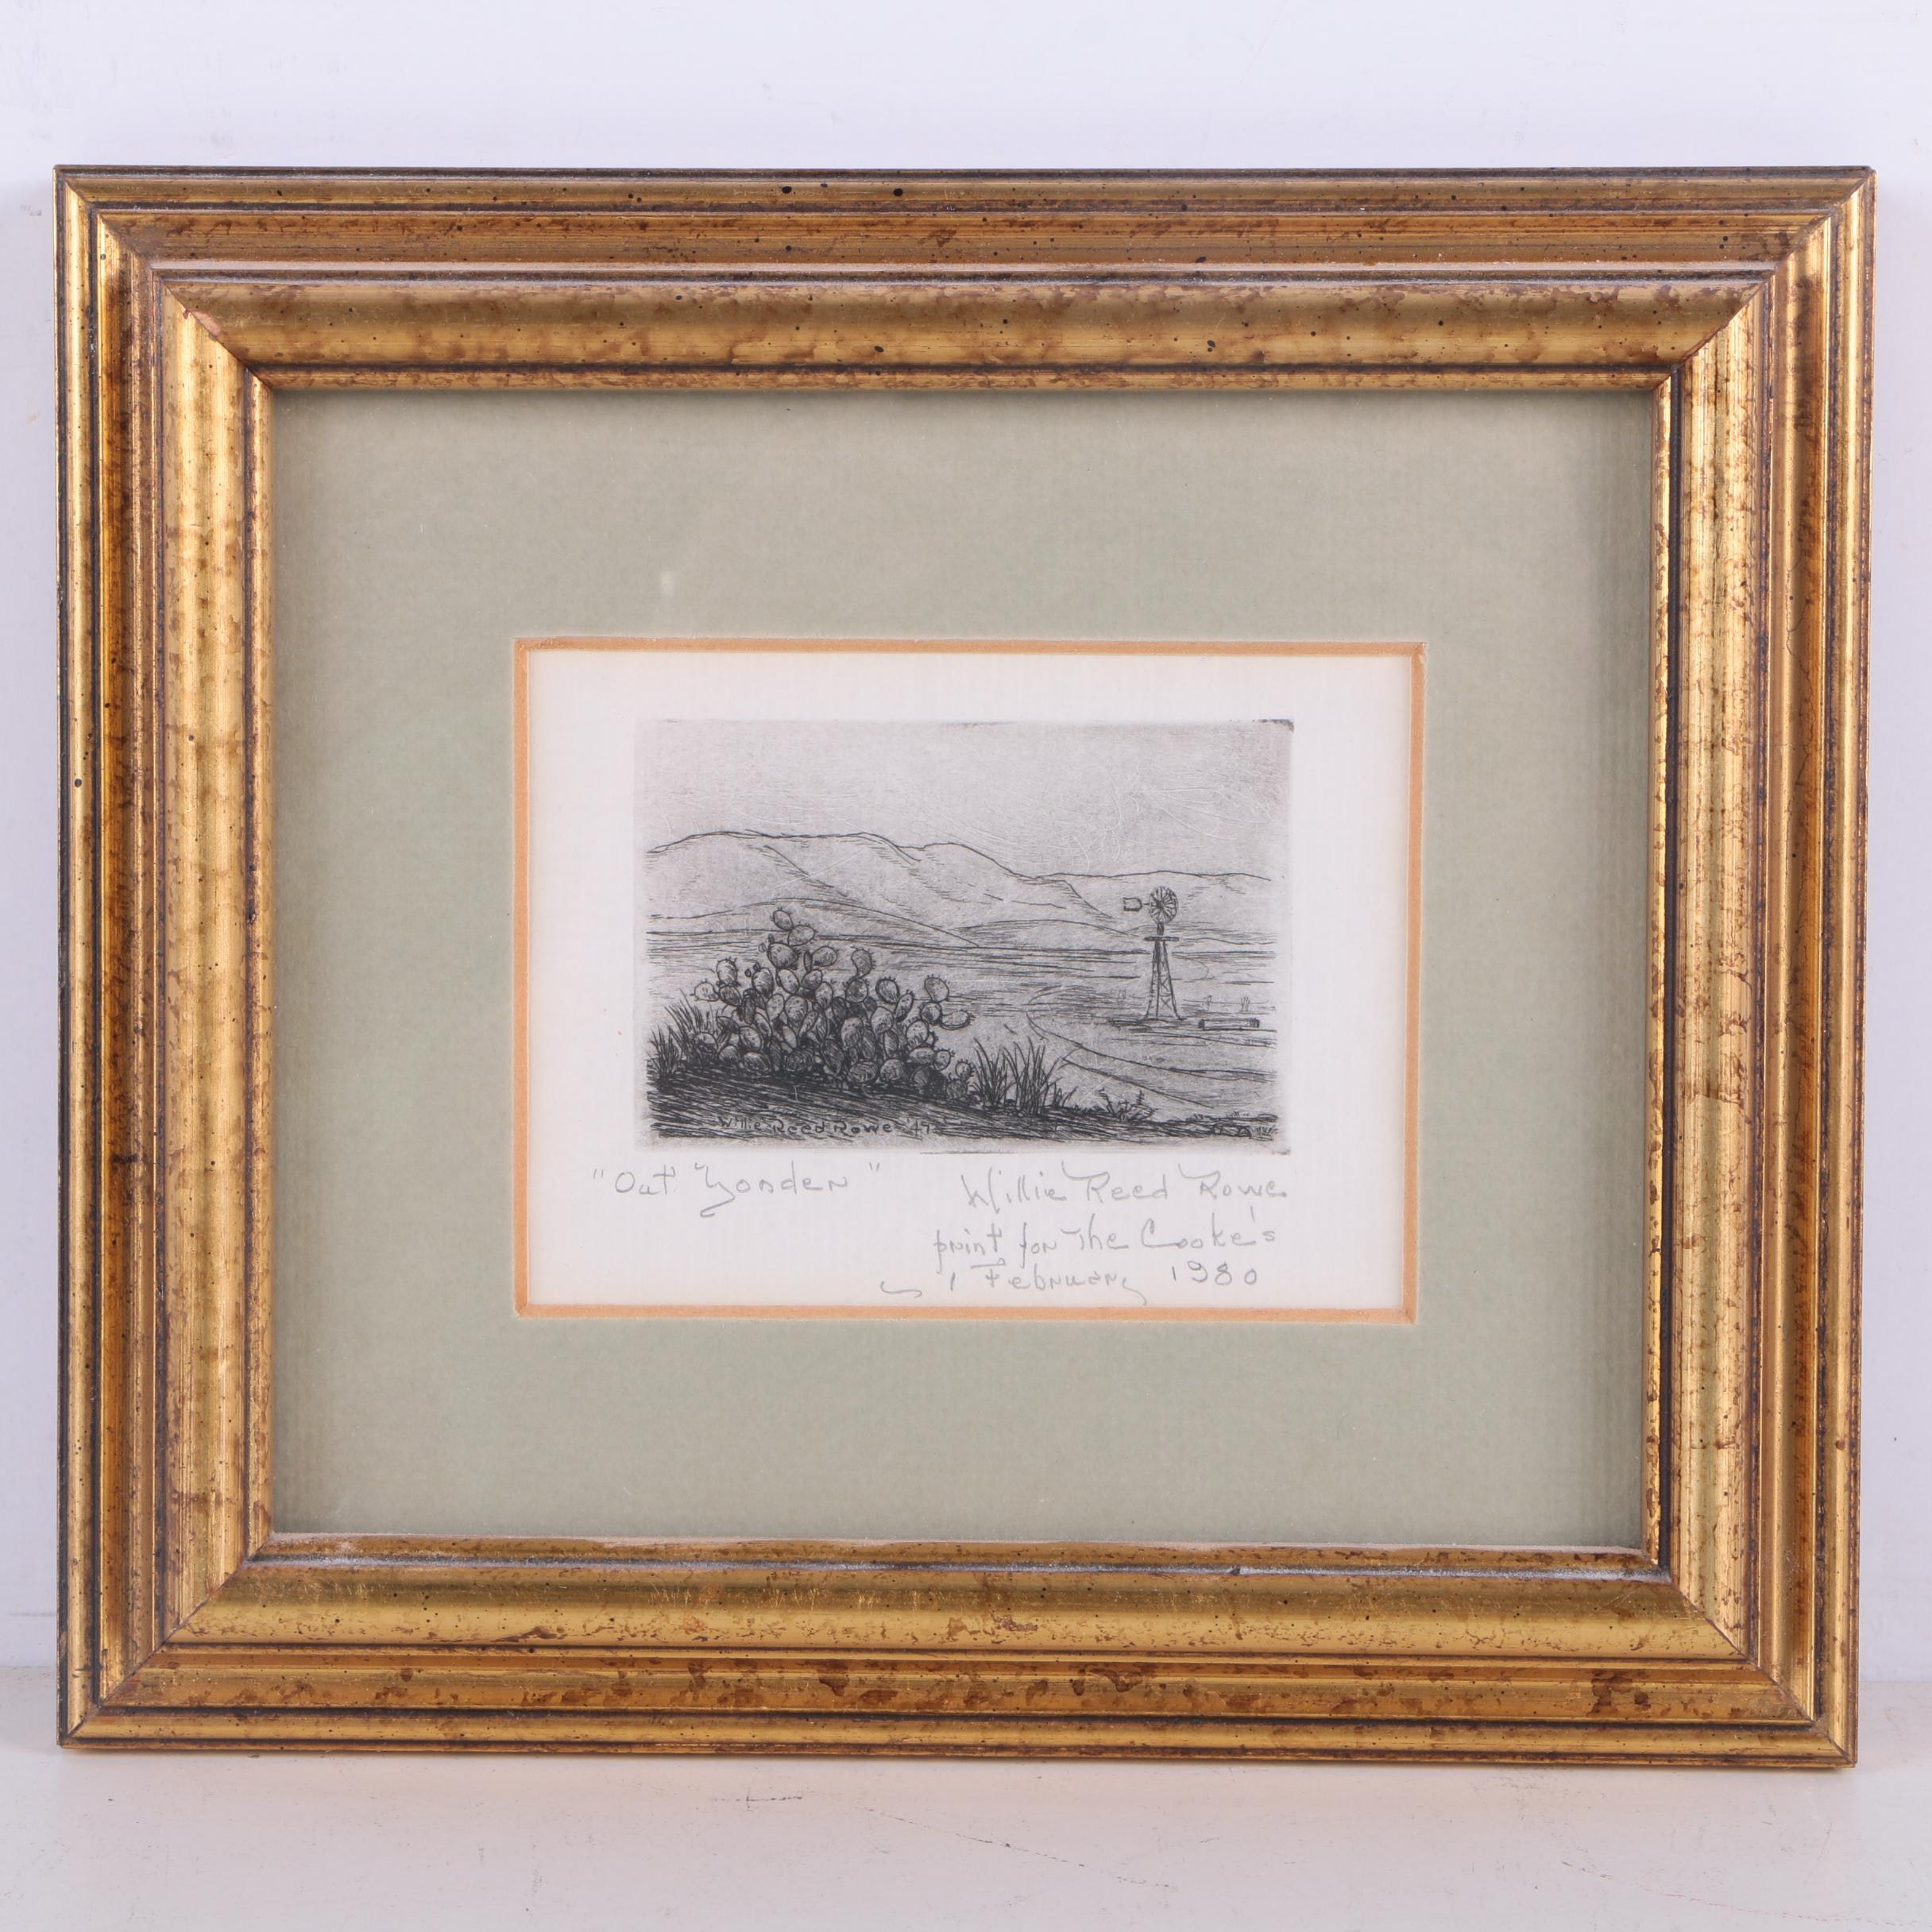 "Willie Reed Rowe Etching on Paper after ""Out Yonder"""